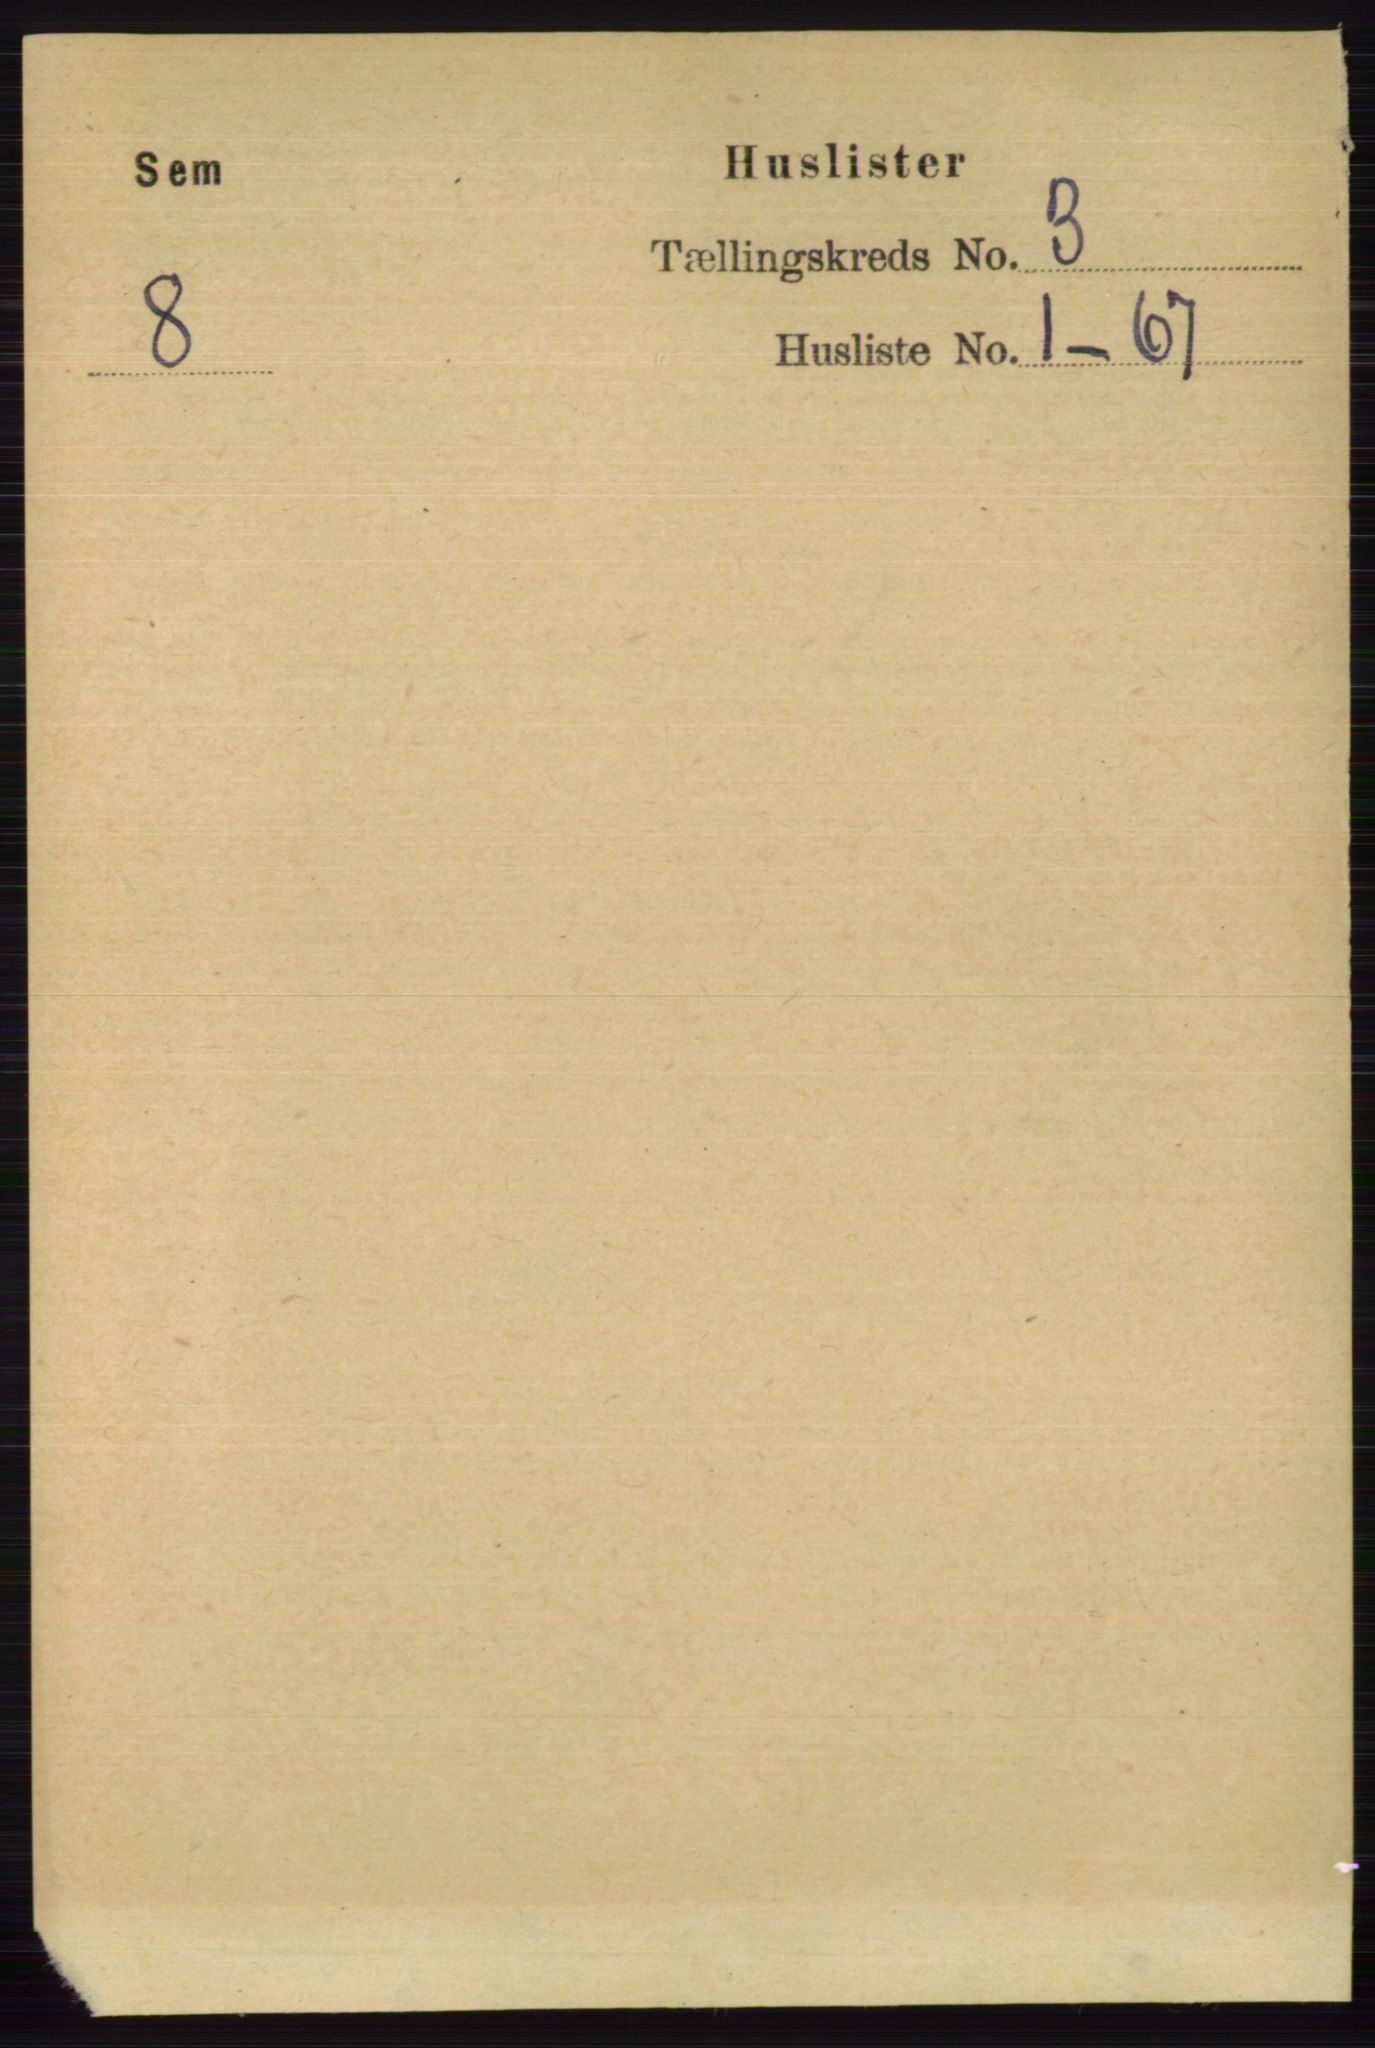 RA, Folketelling 1891 for 0721 Sem herred, 1891, s. 936